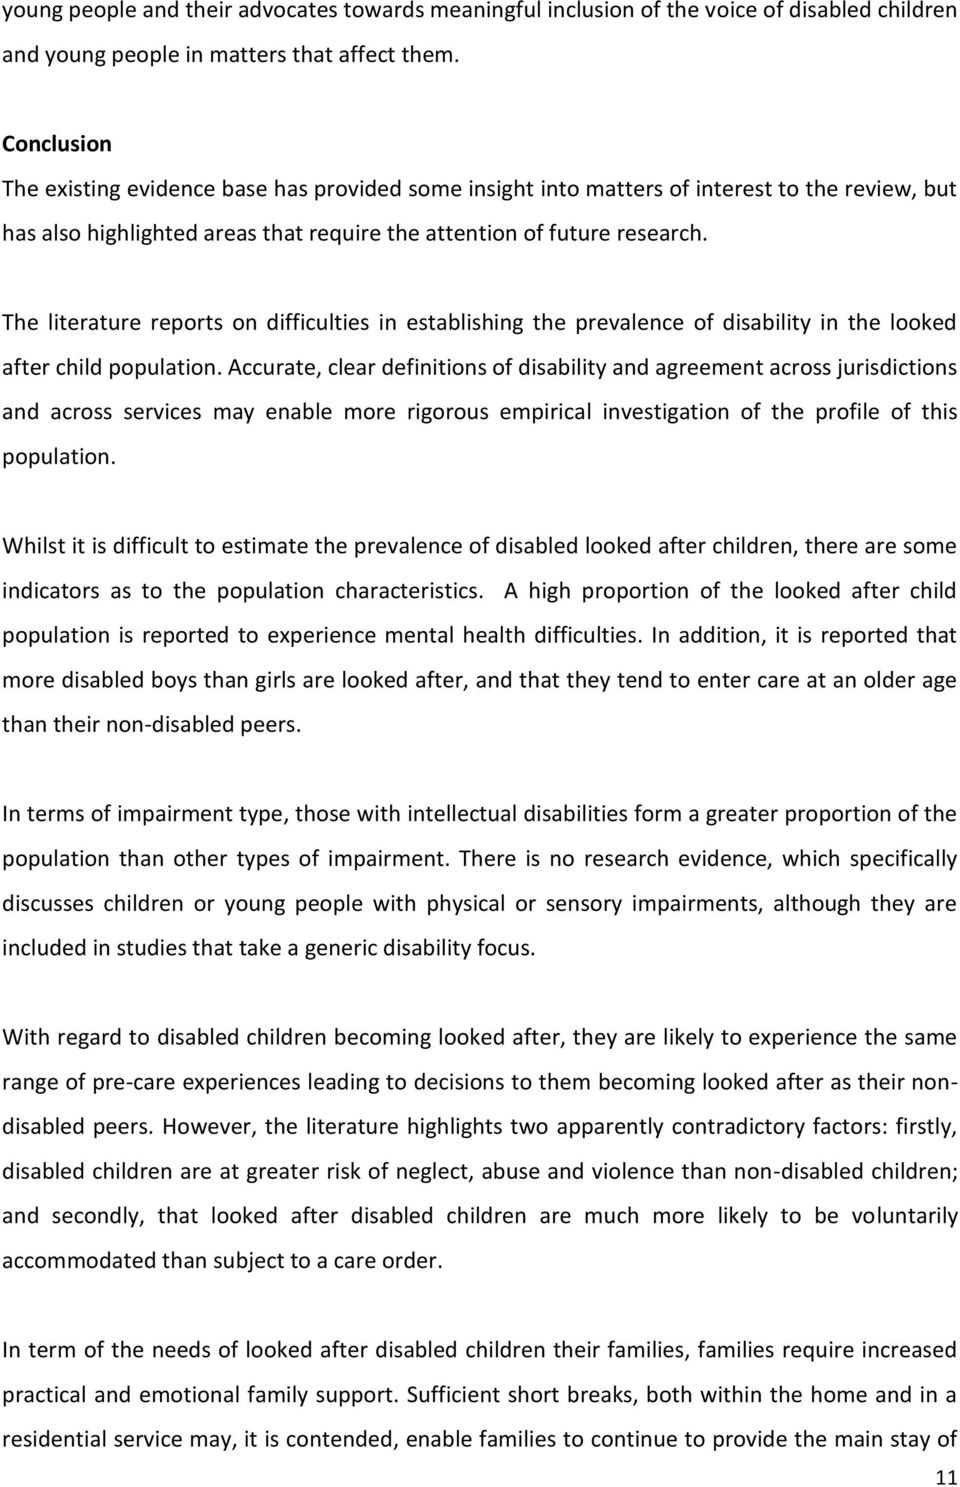 The literature reports on difficulties in establishing the prevalence of disability in the looked after child population.